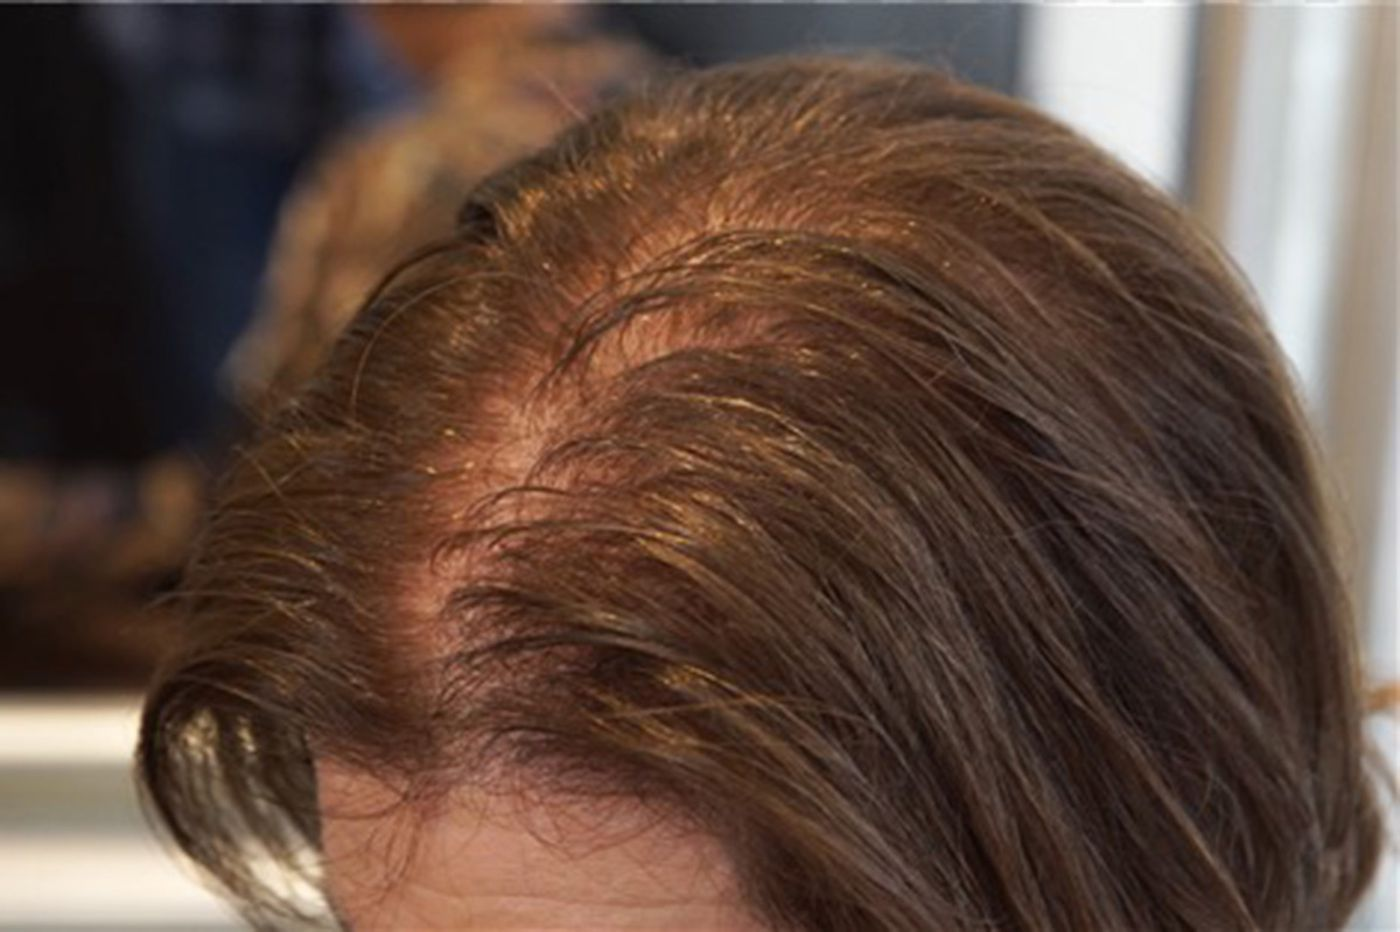 As they age, women lose their hair, too. Which treatments really work?